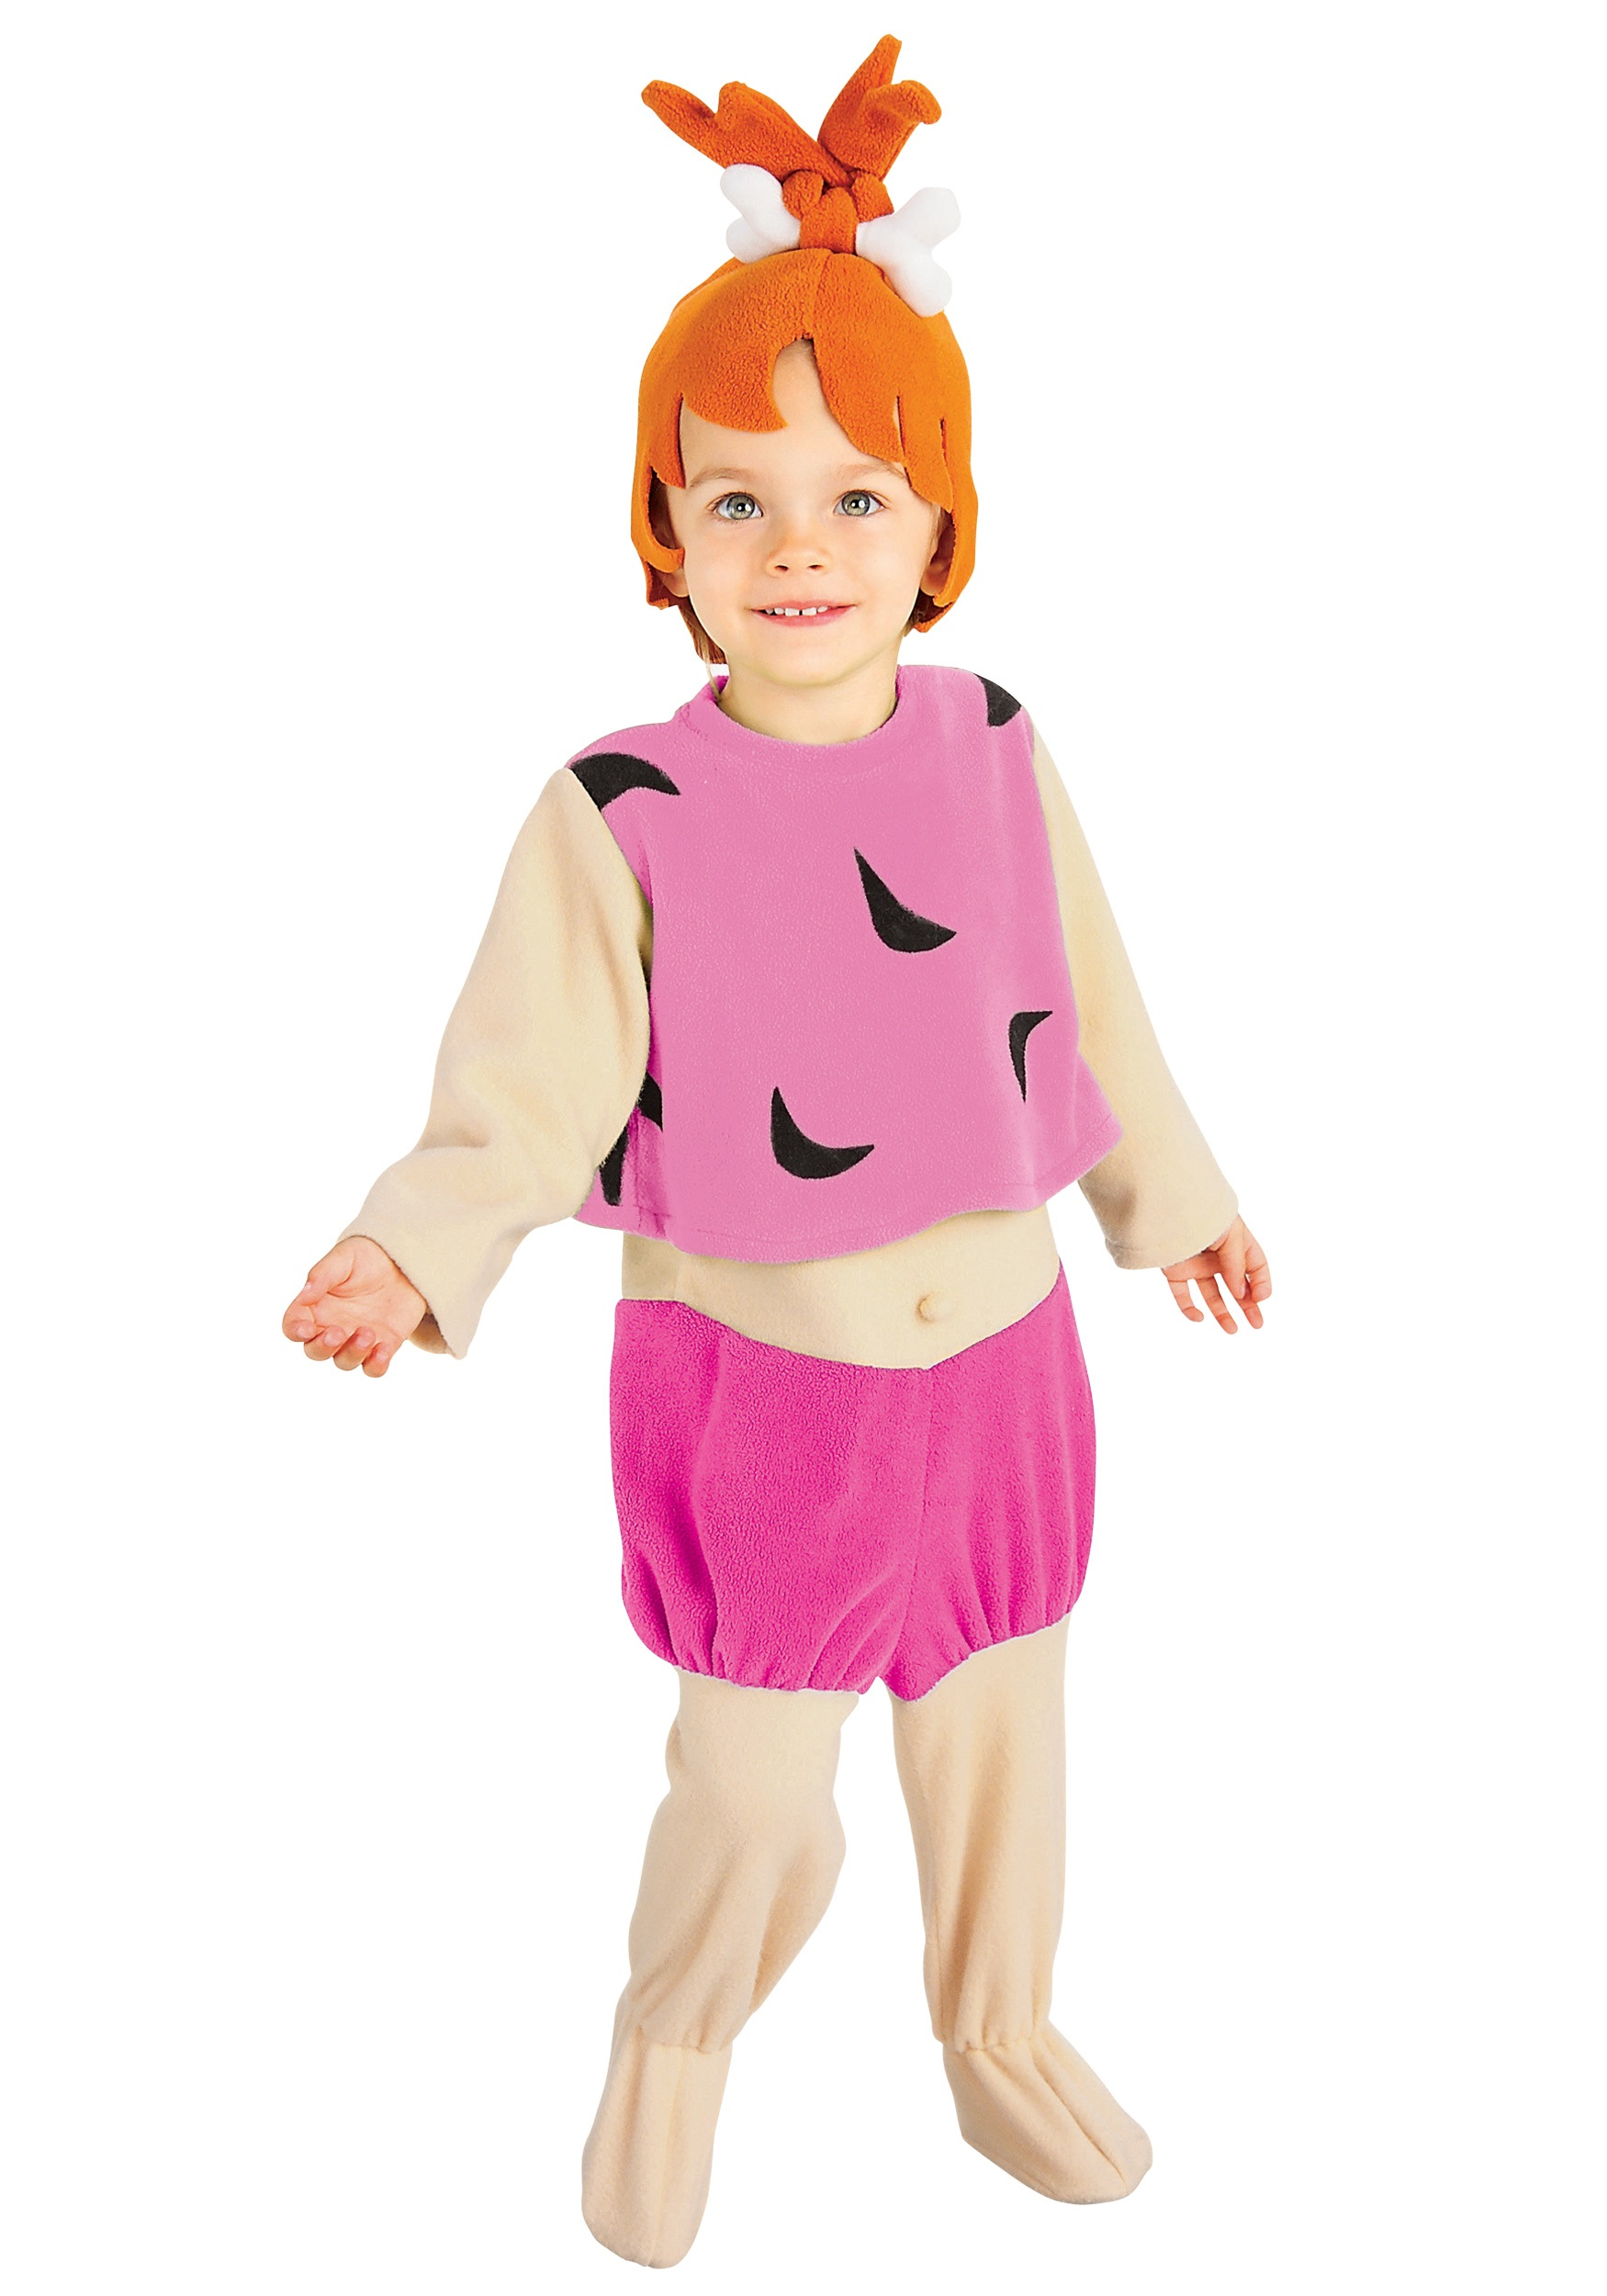 Flintstones Costumes   Accessories - HalloweenCostumes.com 3a36814013ec